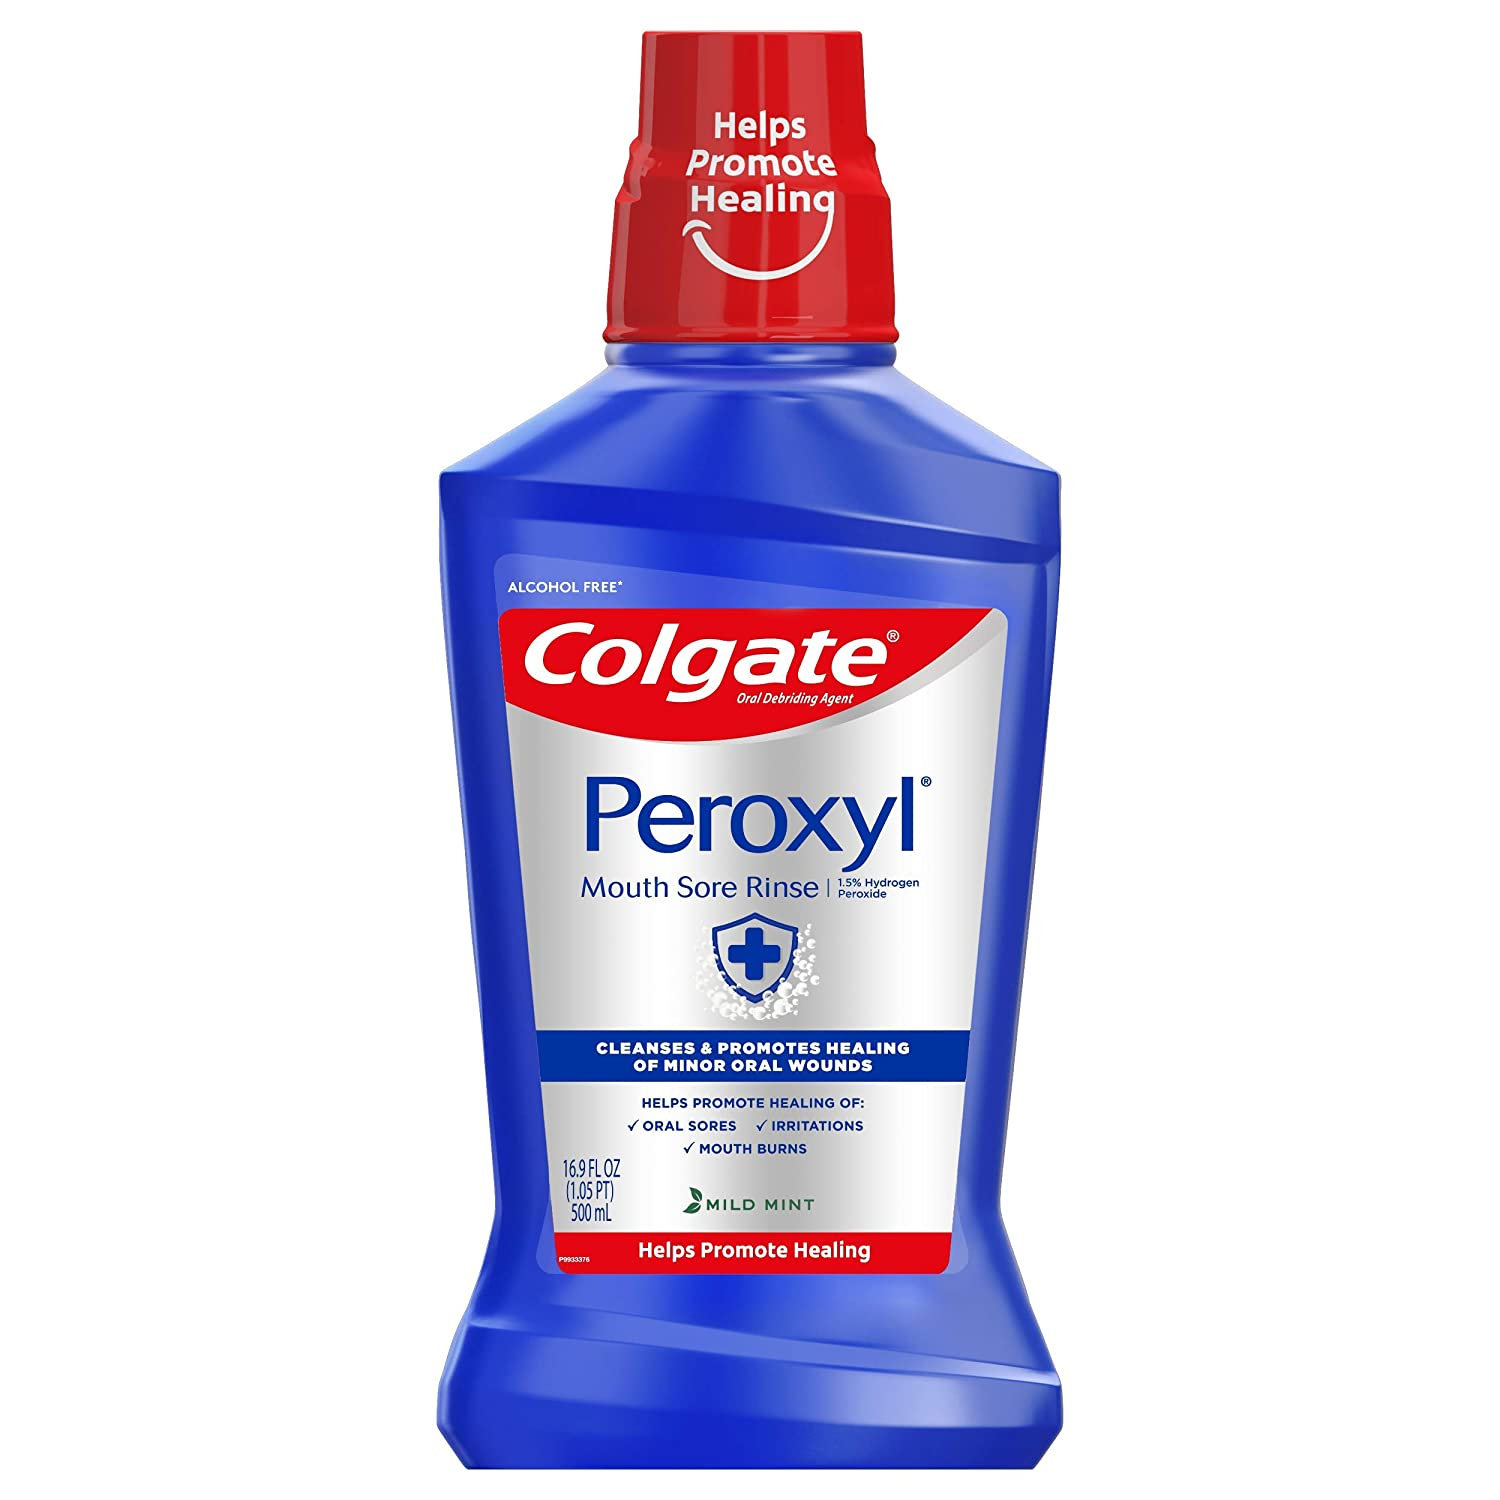 Colgate Peroxyl Mouth Sore Rinse, 1.5% Hydrogen Peroxide, Mild Mint - 500mL, 16.9 fluid ounces : Beauty